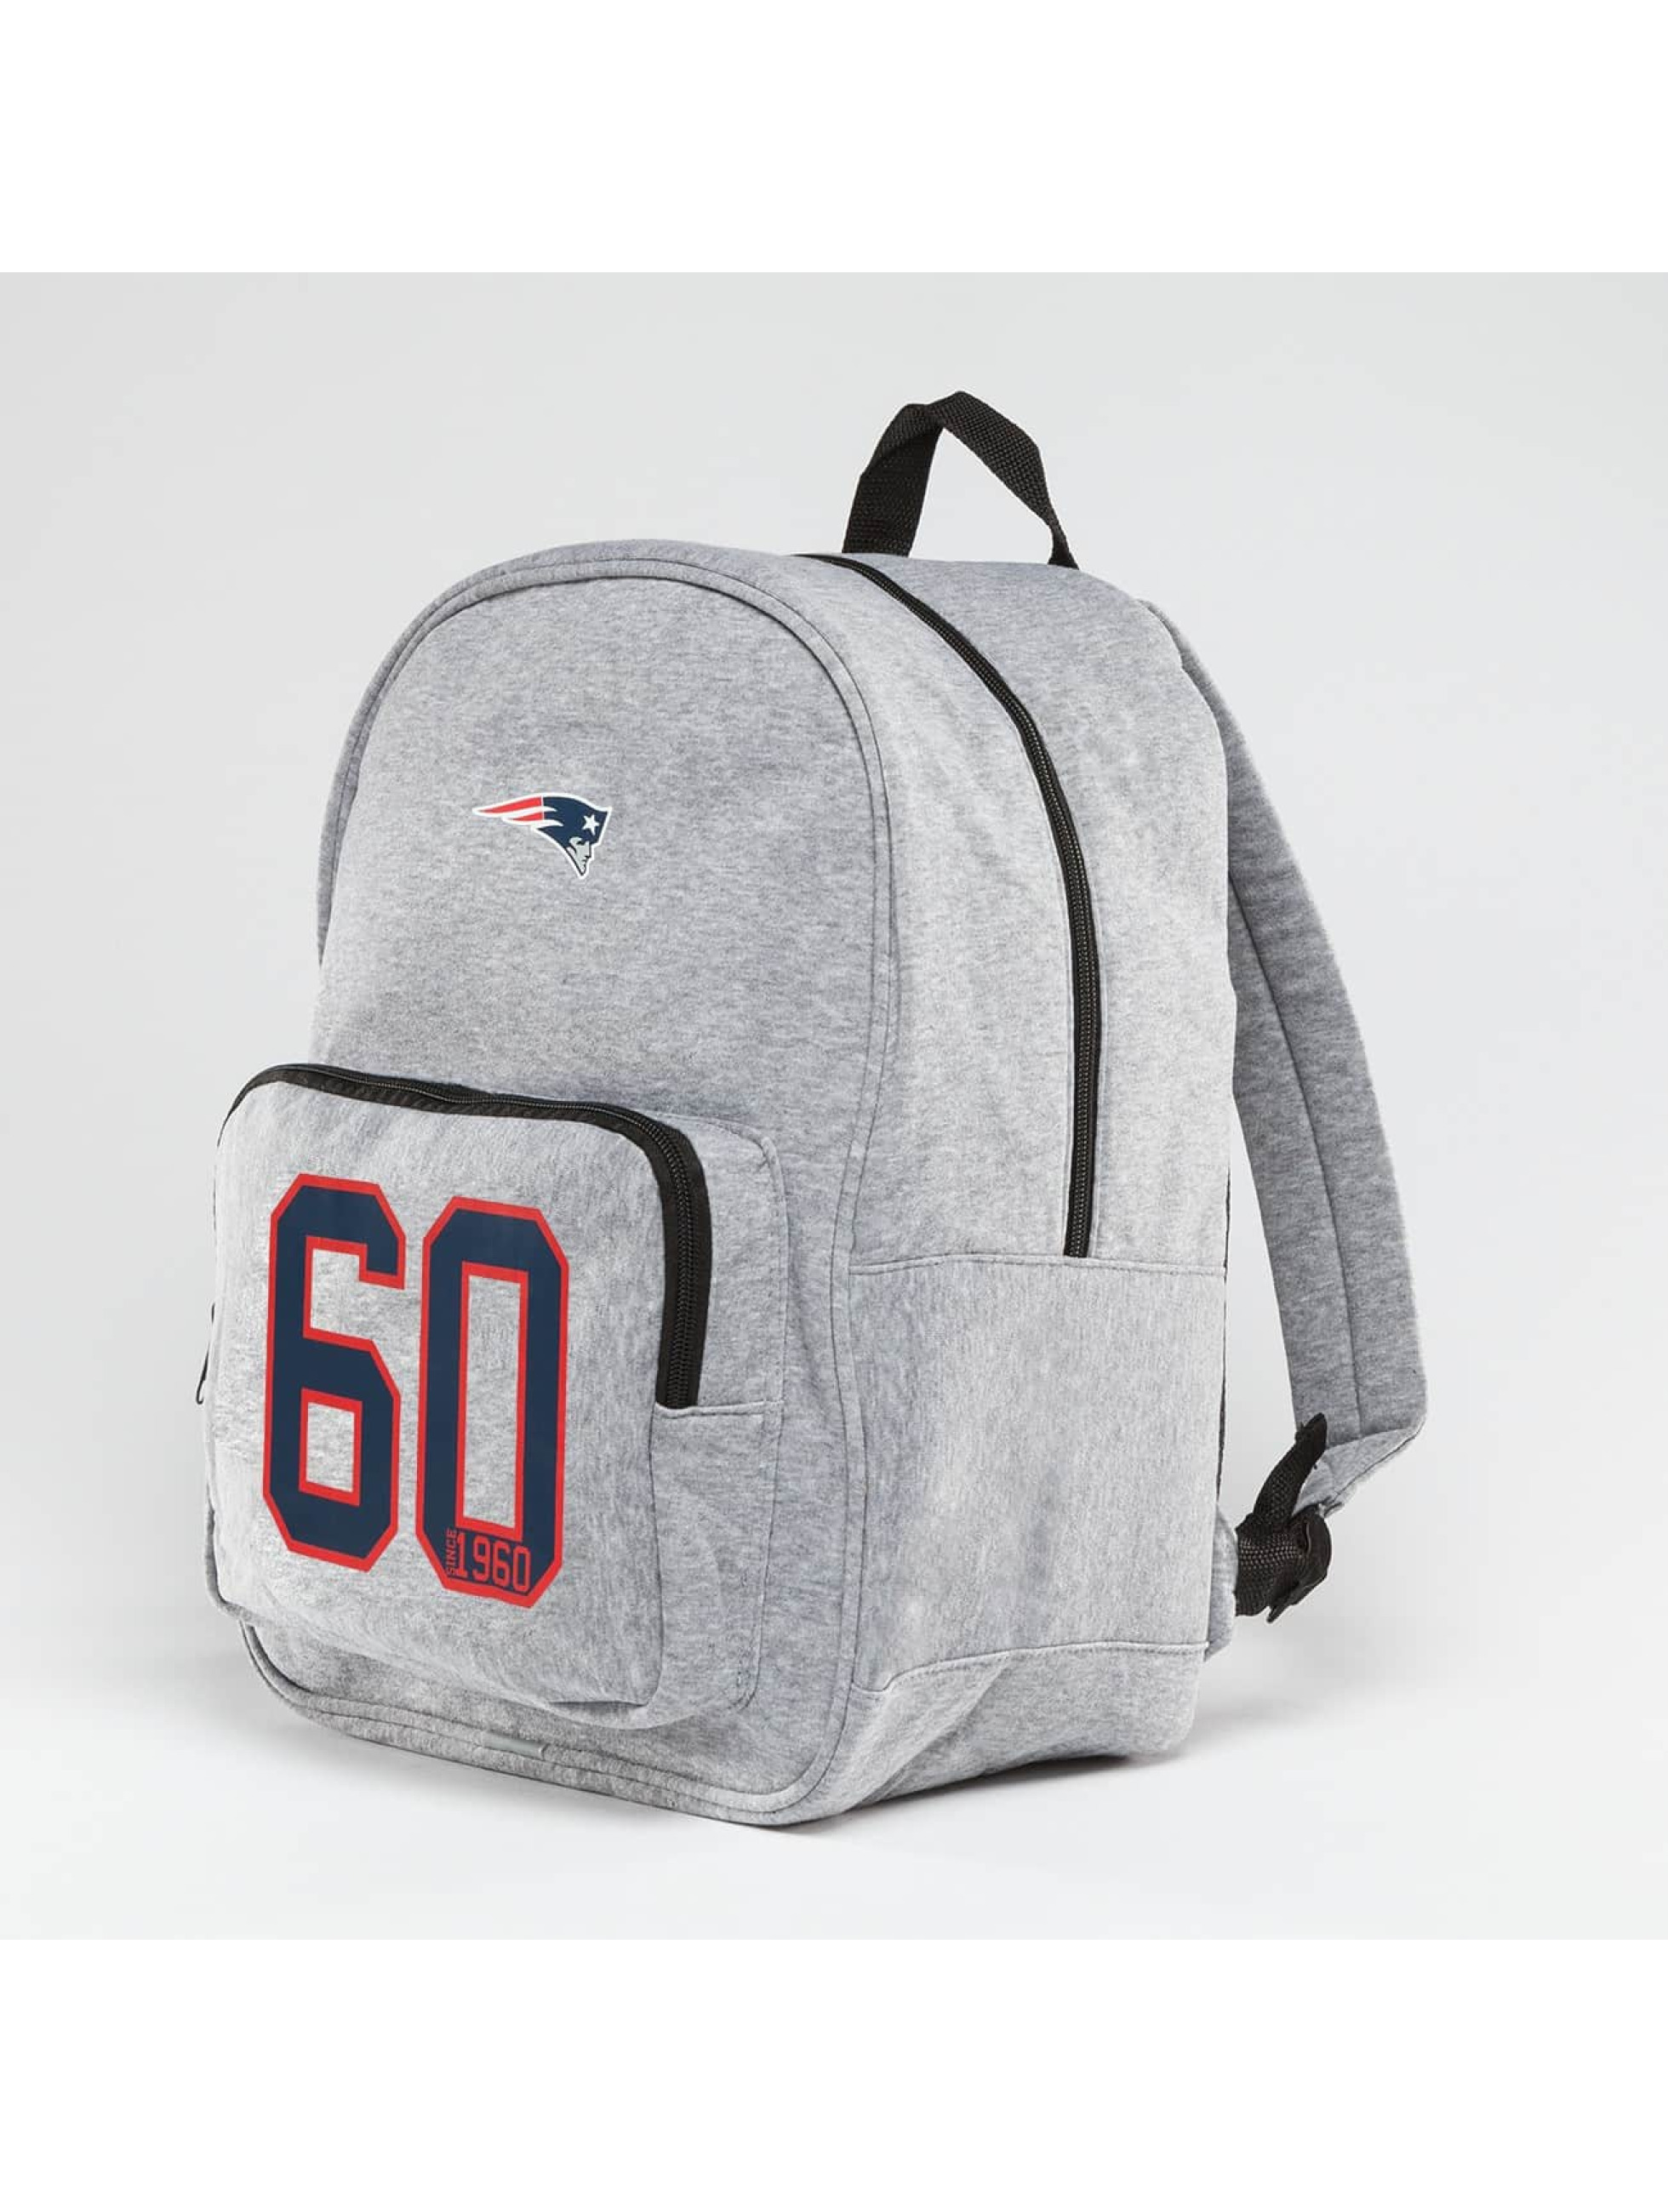 Forever Collectibles Ryggsäck NFL New England Patriots grå